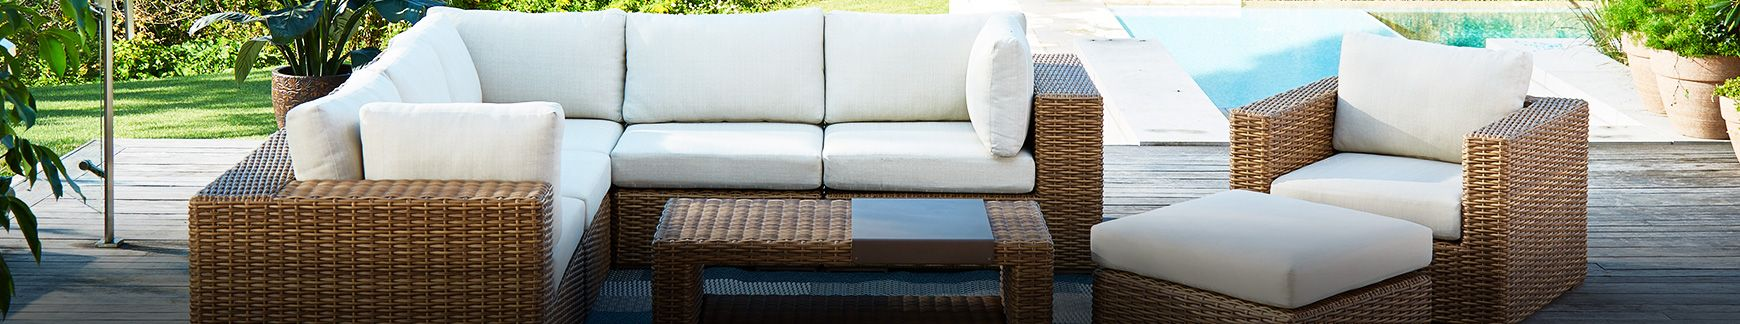 quick furniture outdoor chair lounge west out ship leaf east